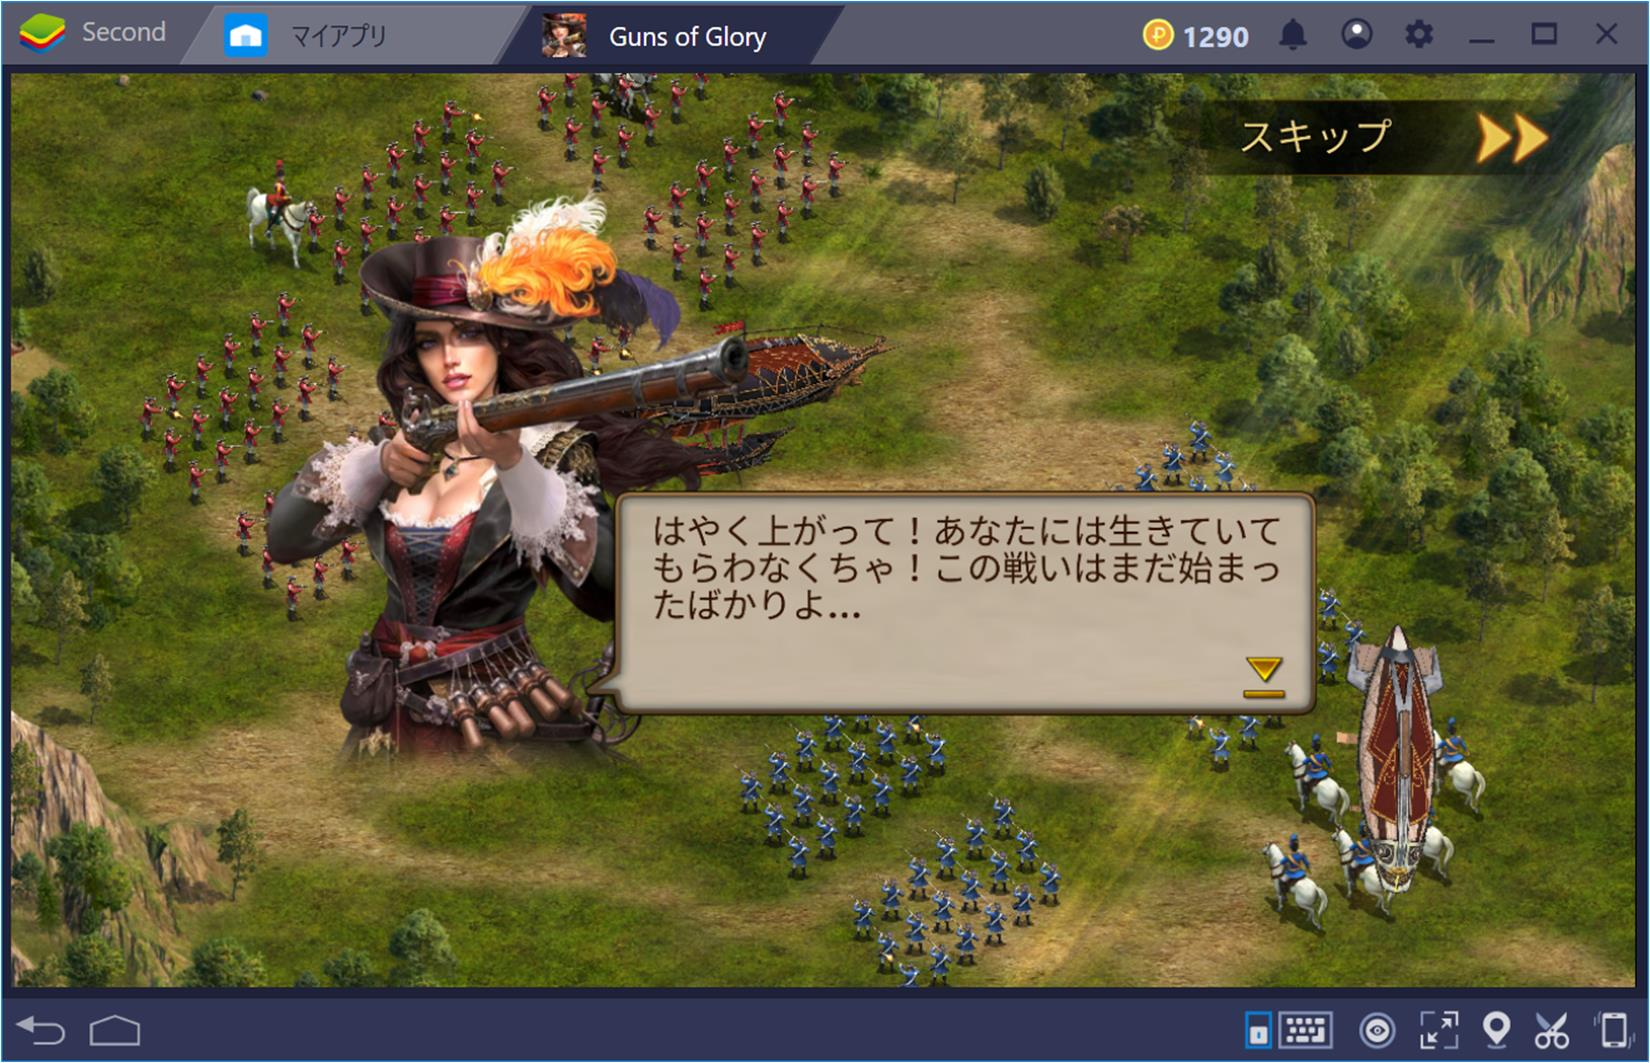 BlueStacksを使ってPCで『Guns of Glory』を遊ぼう